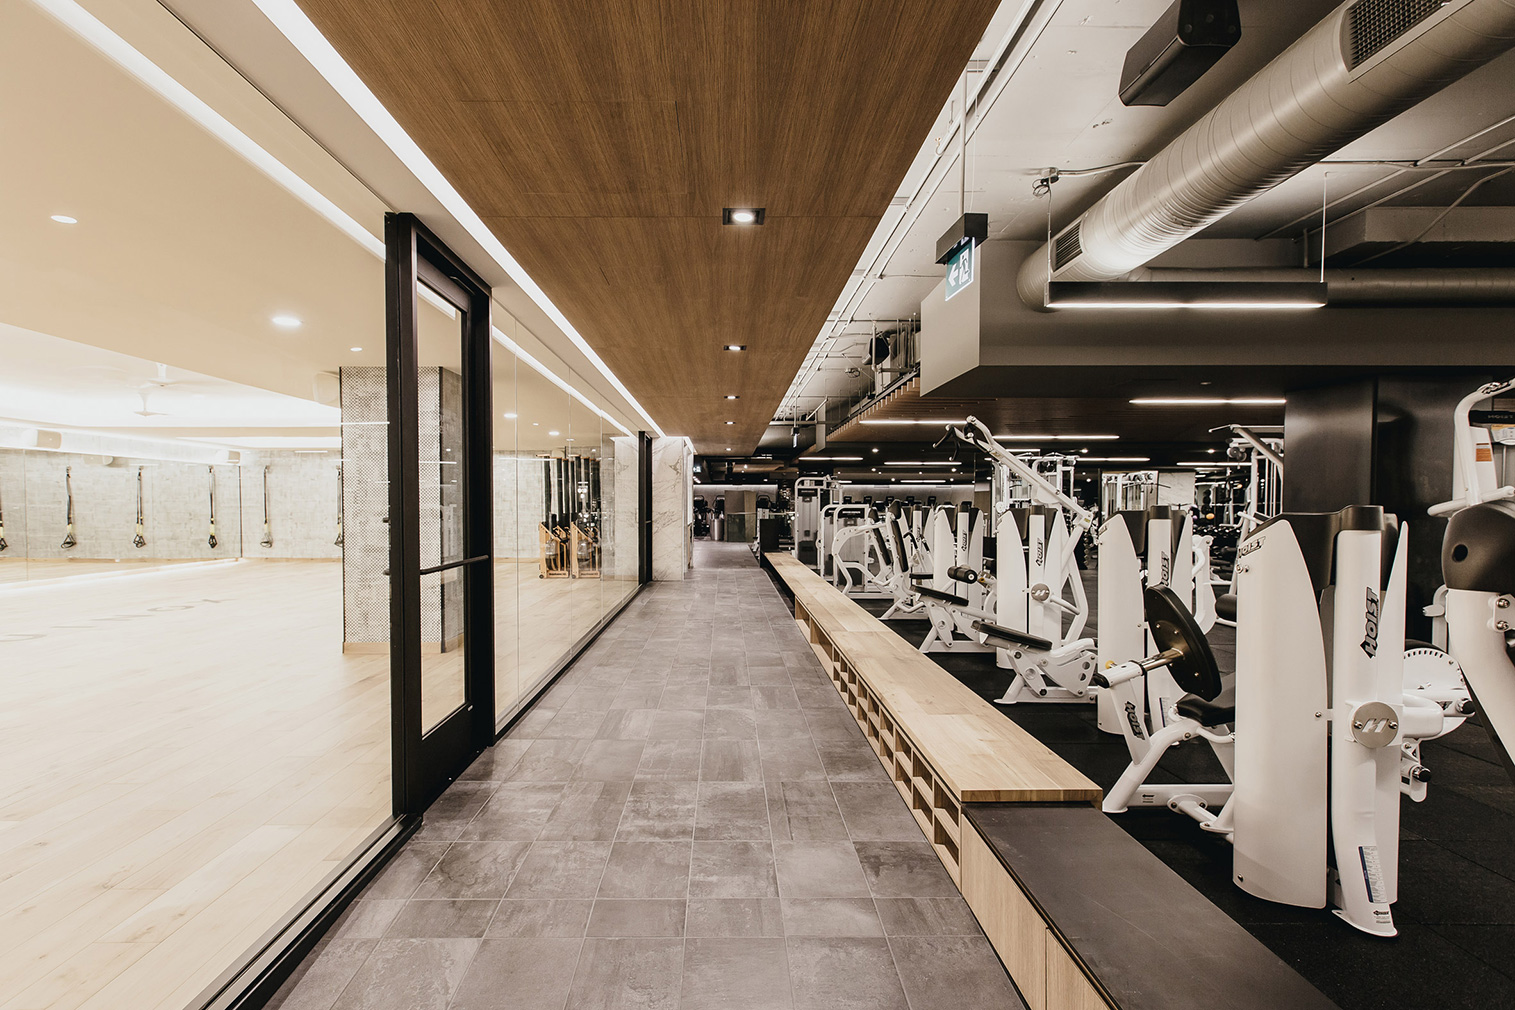 Gyms that raise the bar for design: Equinox Vancouver